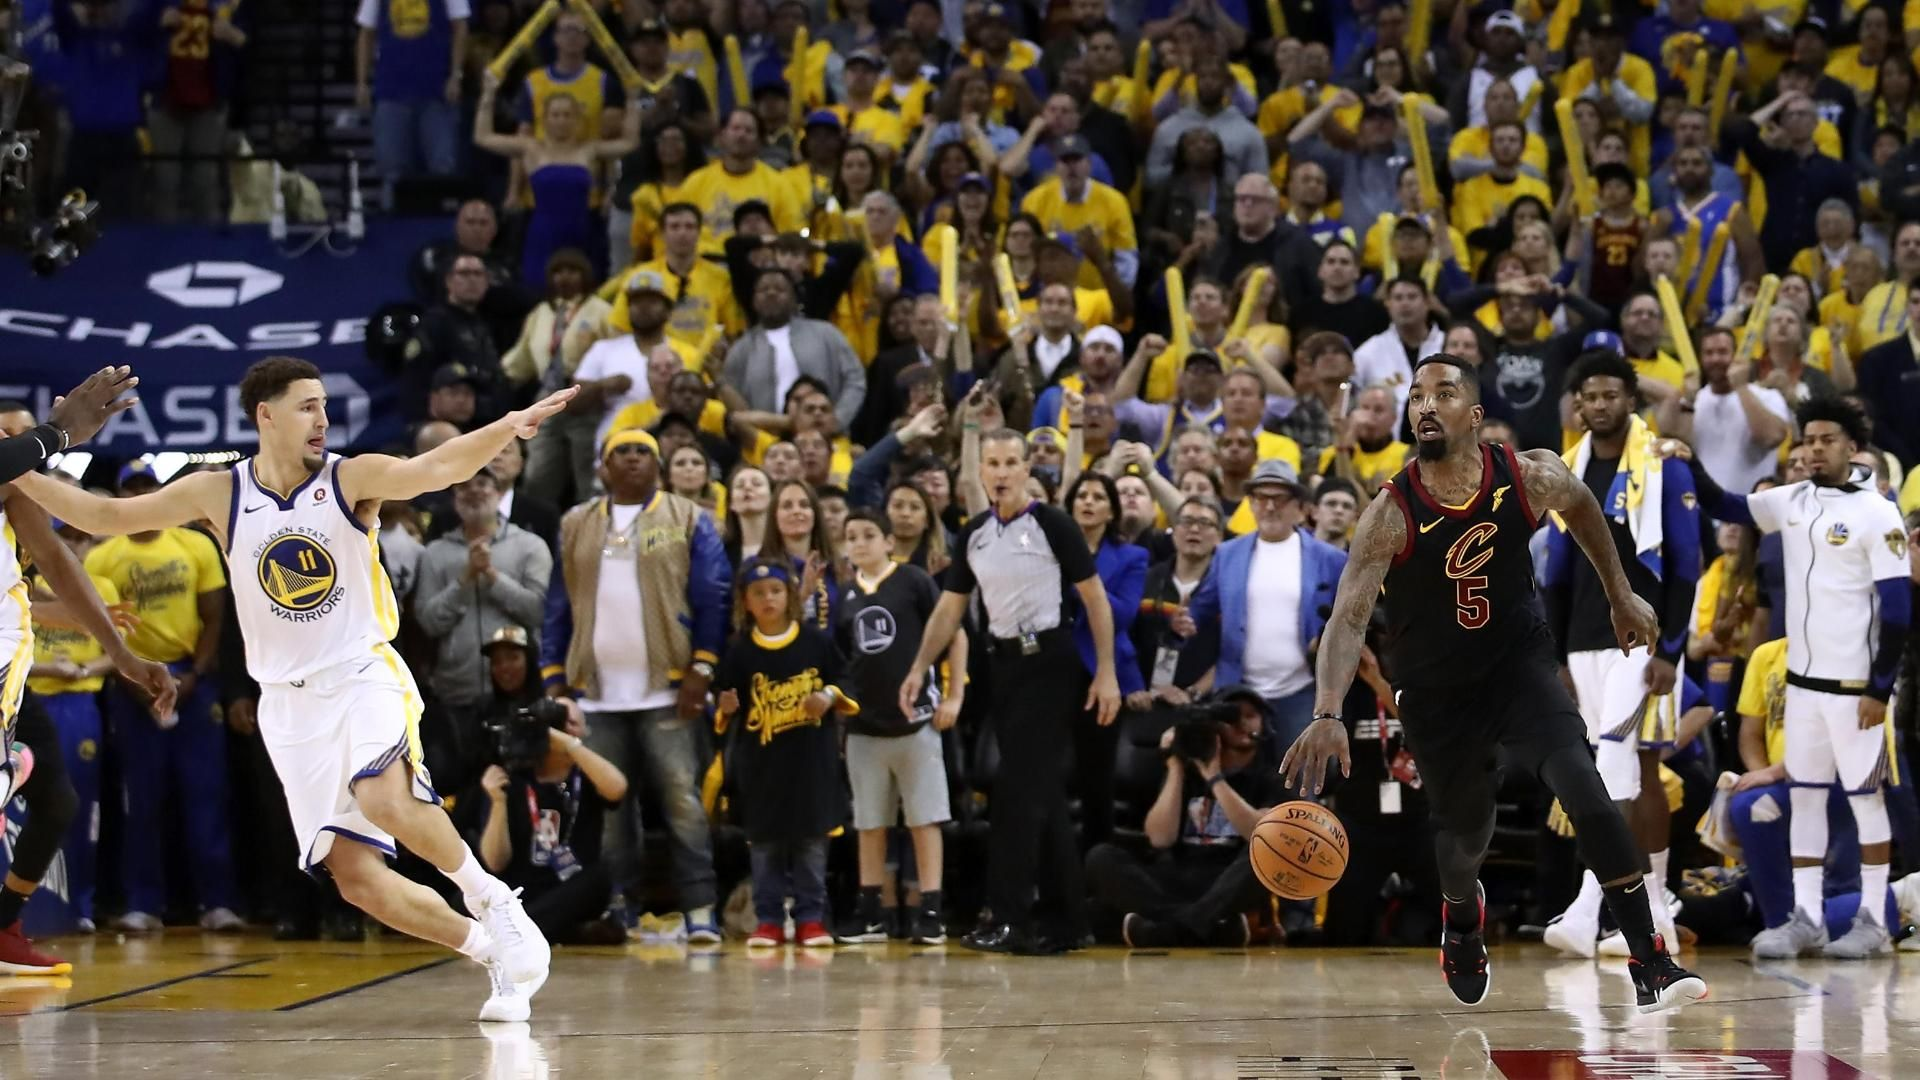 JR, Cavs blow chance at win in regulation